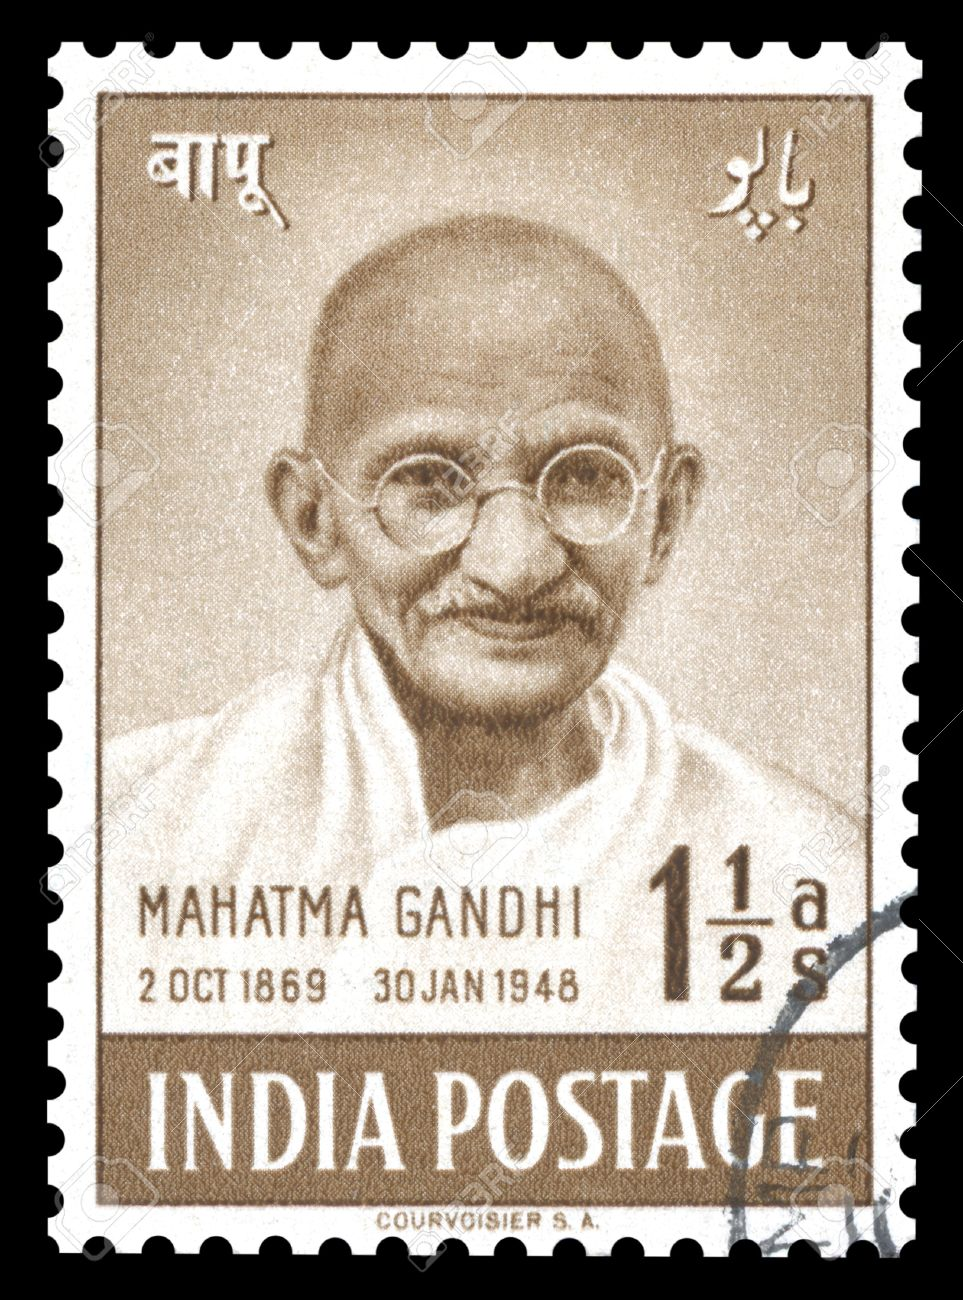 Vintage India postage stamp of 1948 showing an engraved portrait